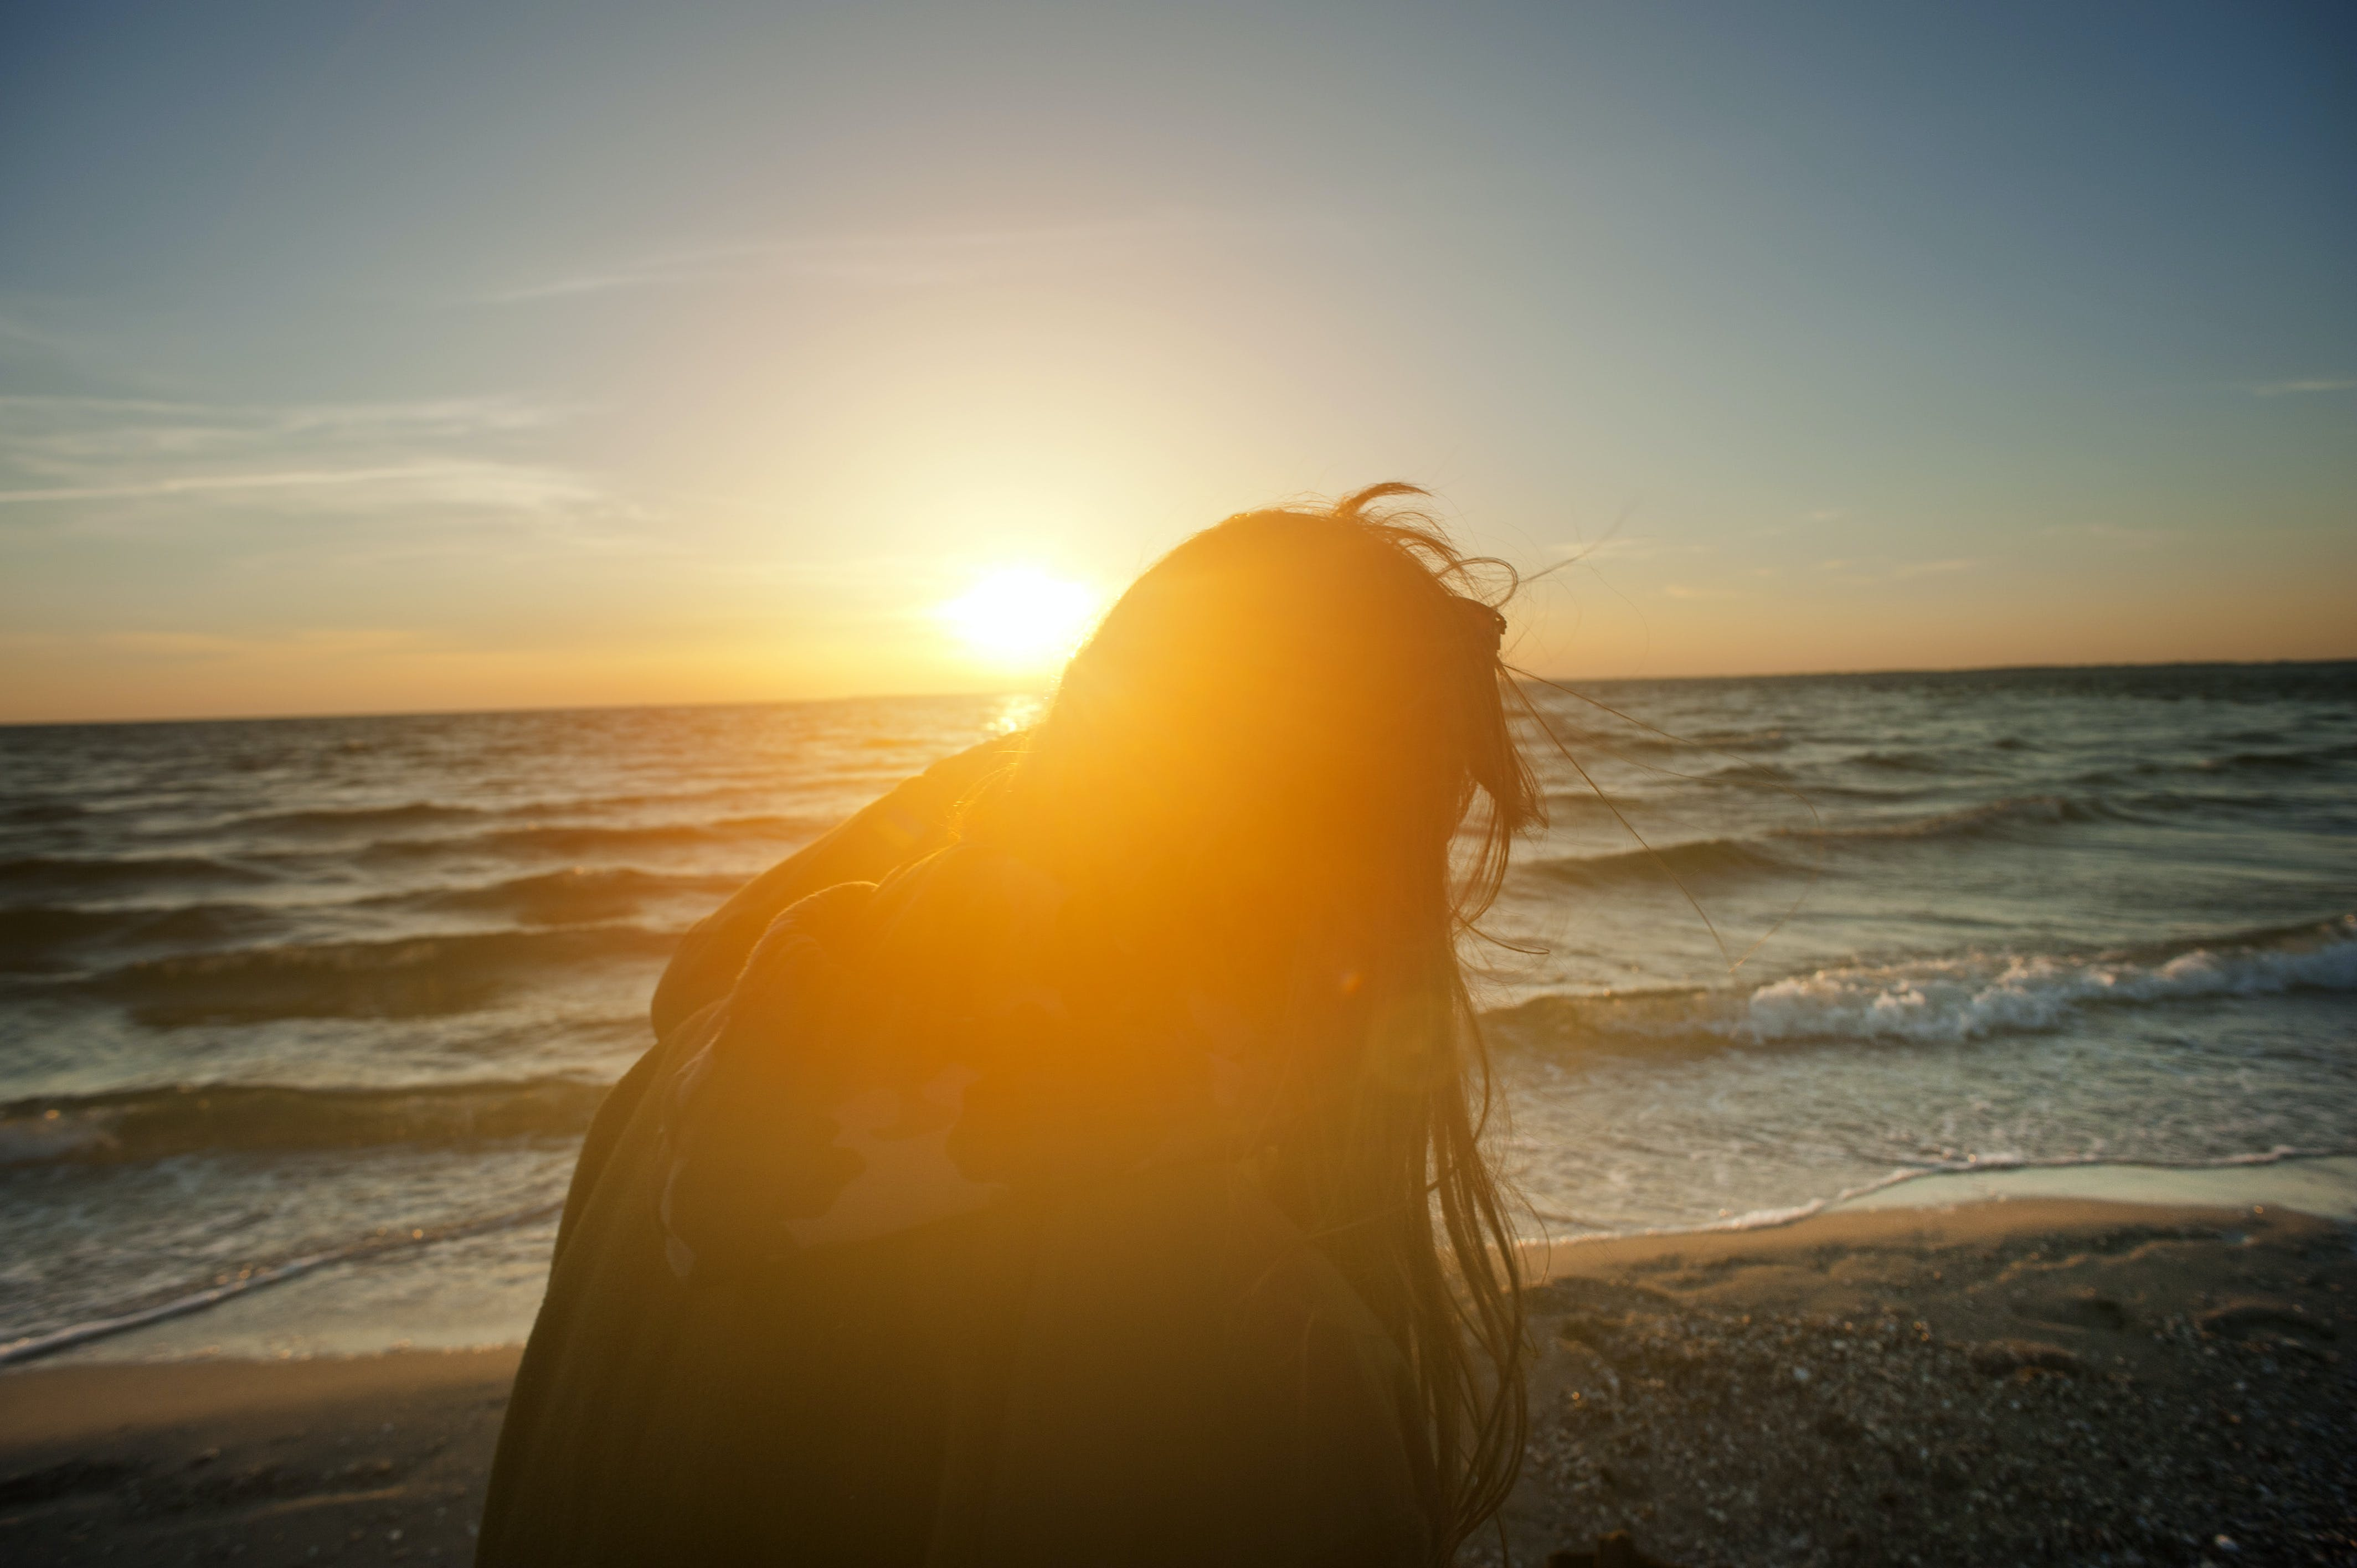 Silhouette of Woman Sitting on Beach Shore